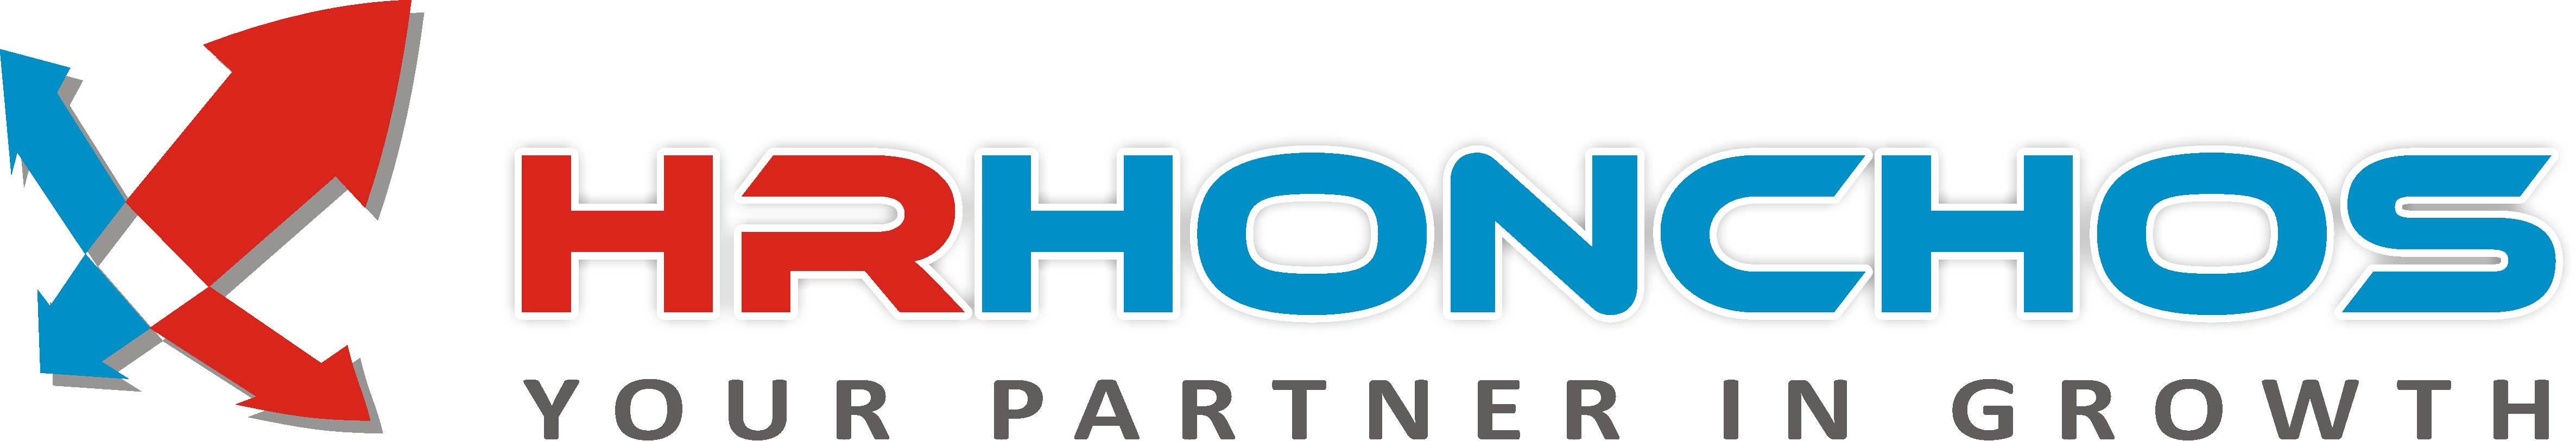 HRHONCHOS CONSULTING SOLUTIONS PRIVATE LIMITED logo